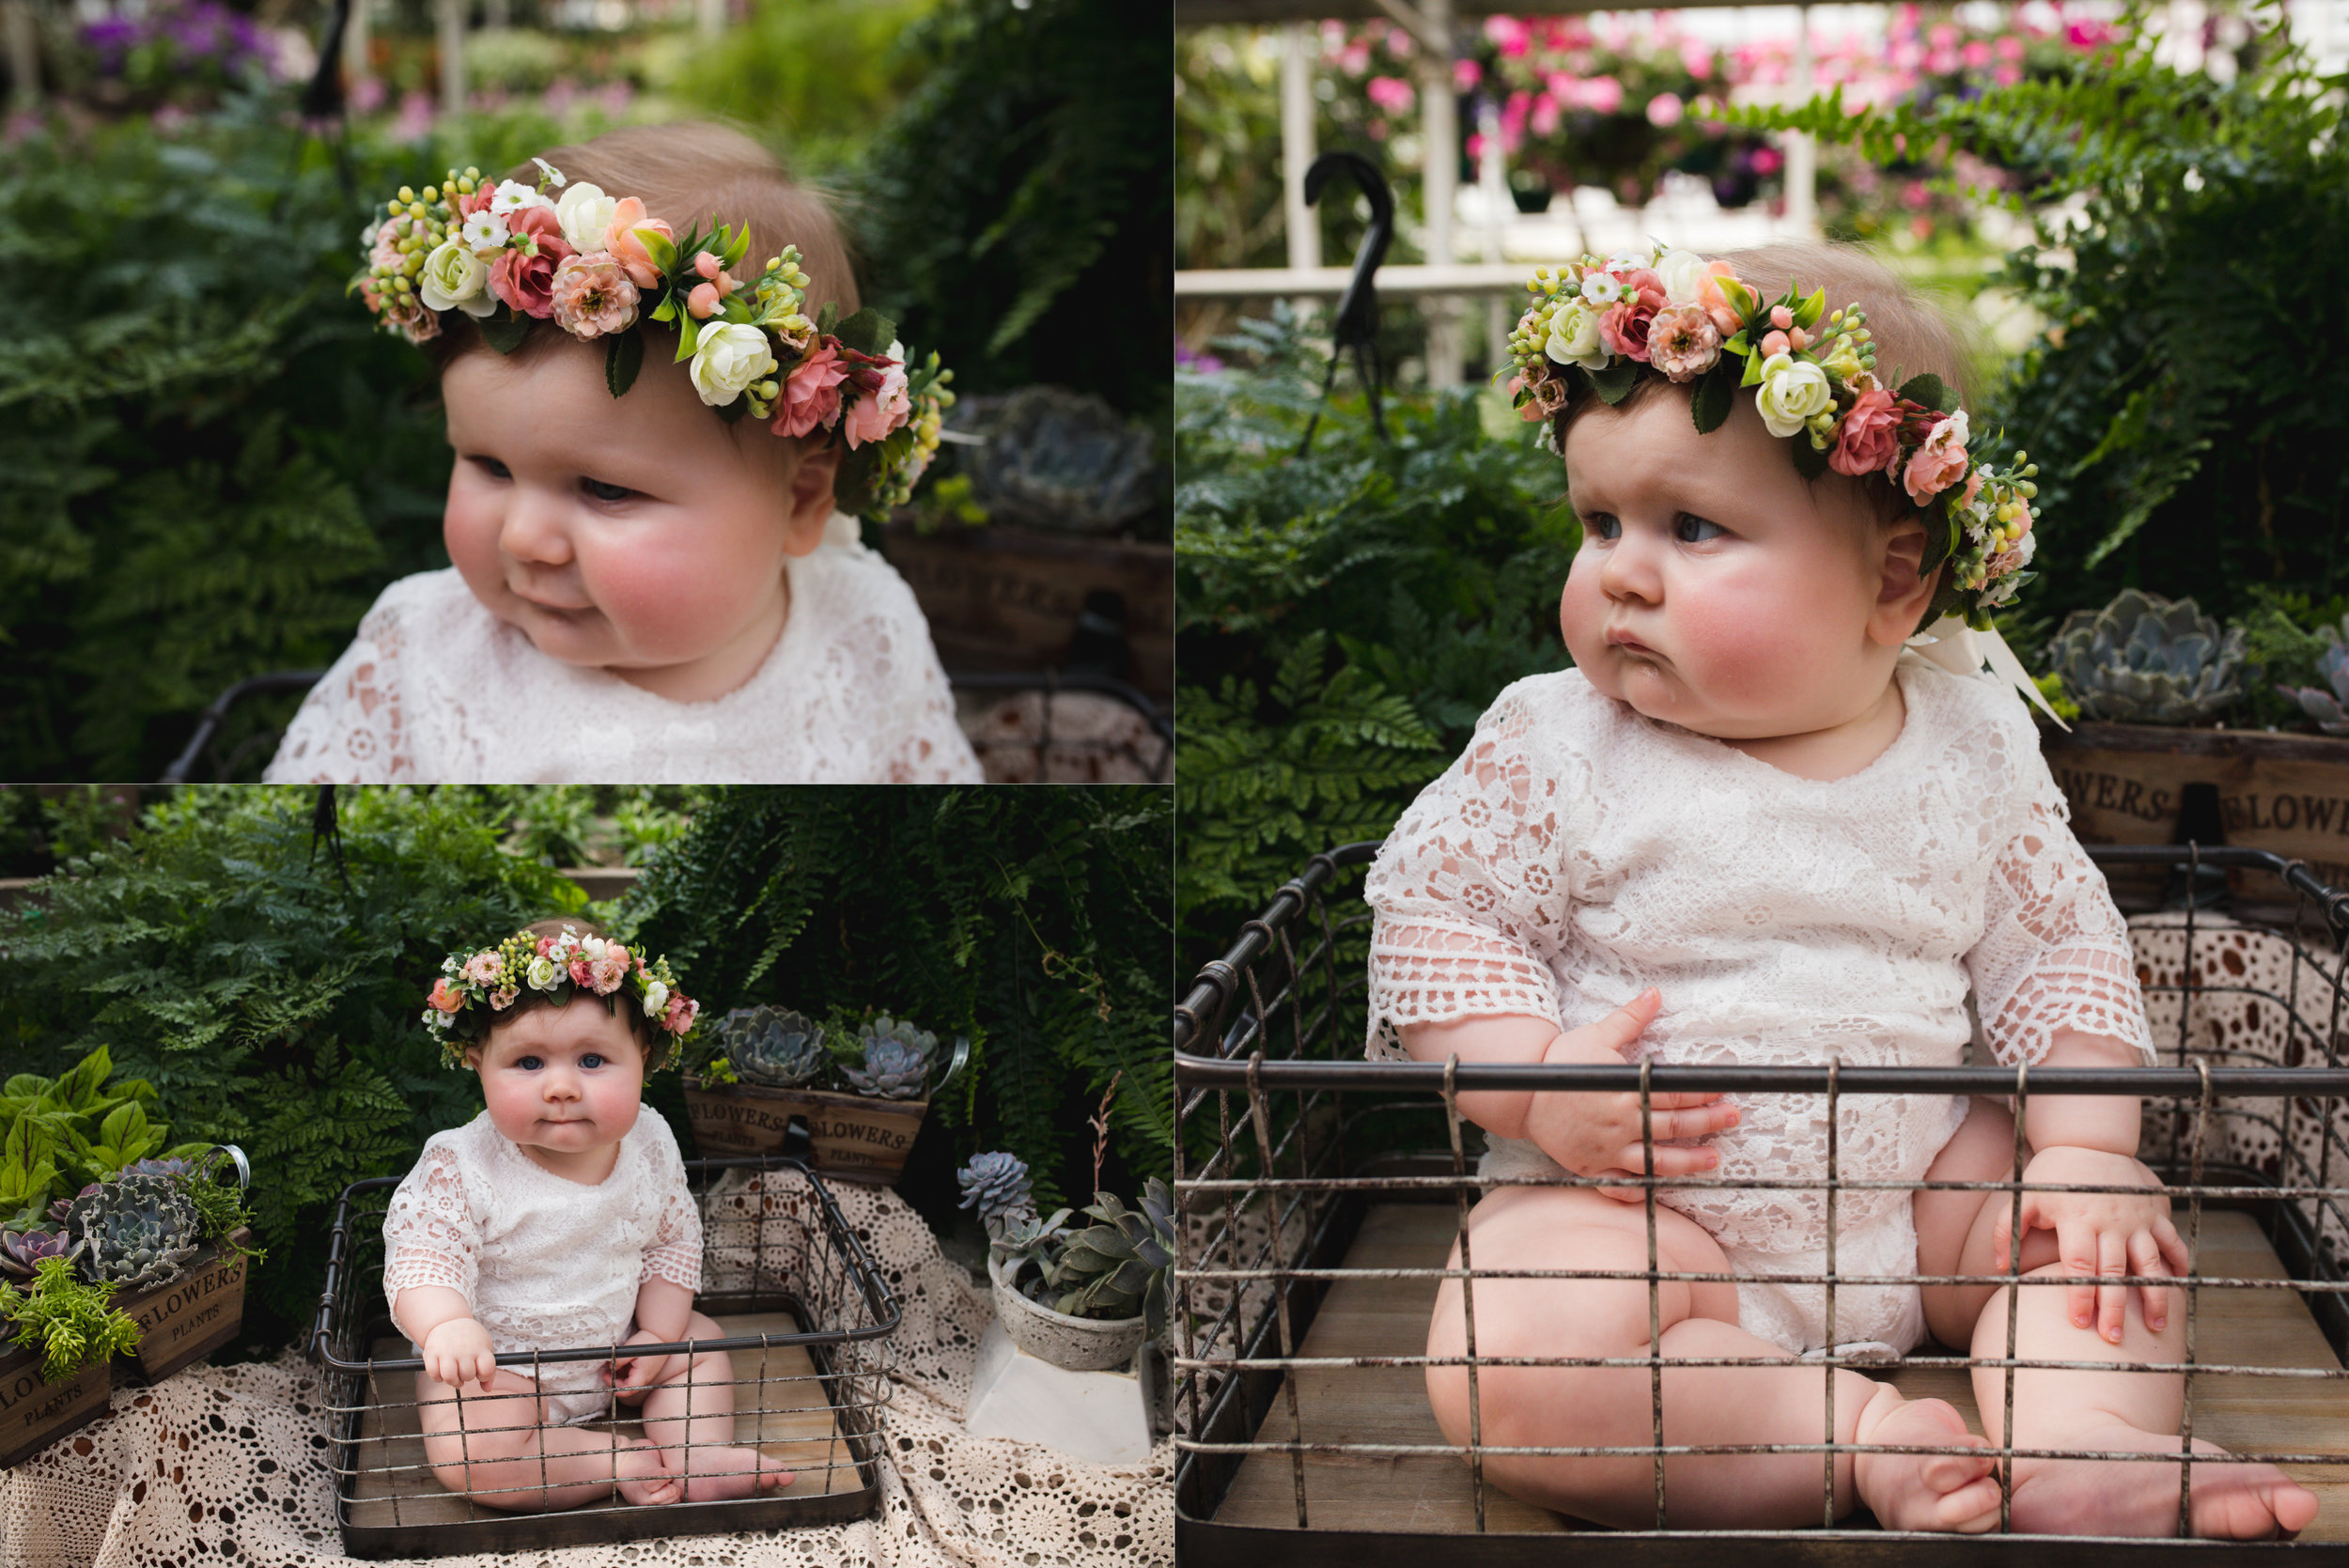 At Pierson's Greenhouse in Cedar Rapids, Iowa a baby girl is sitting in a wire crate around succulents and plants.